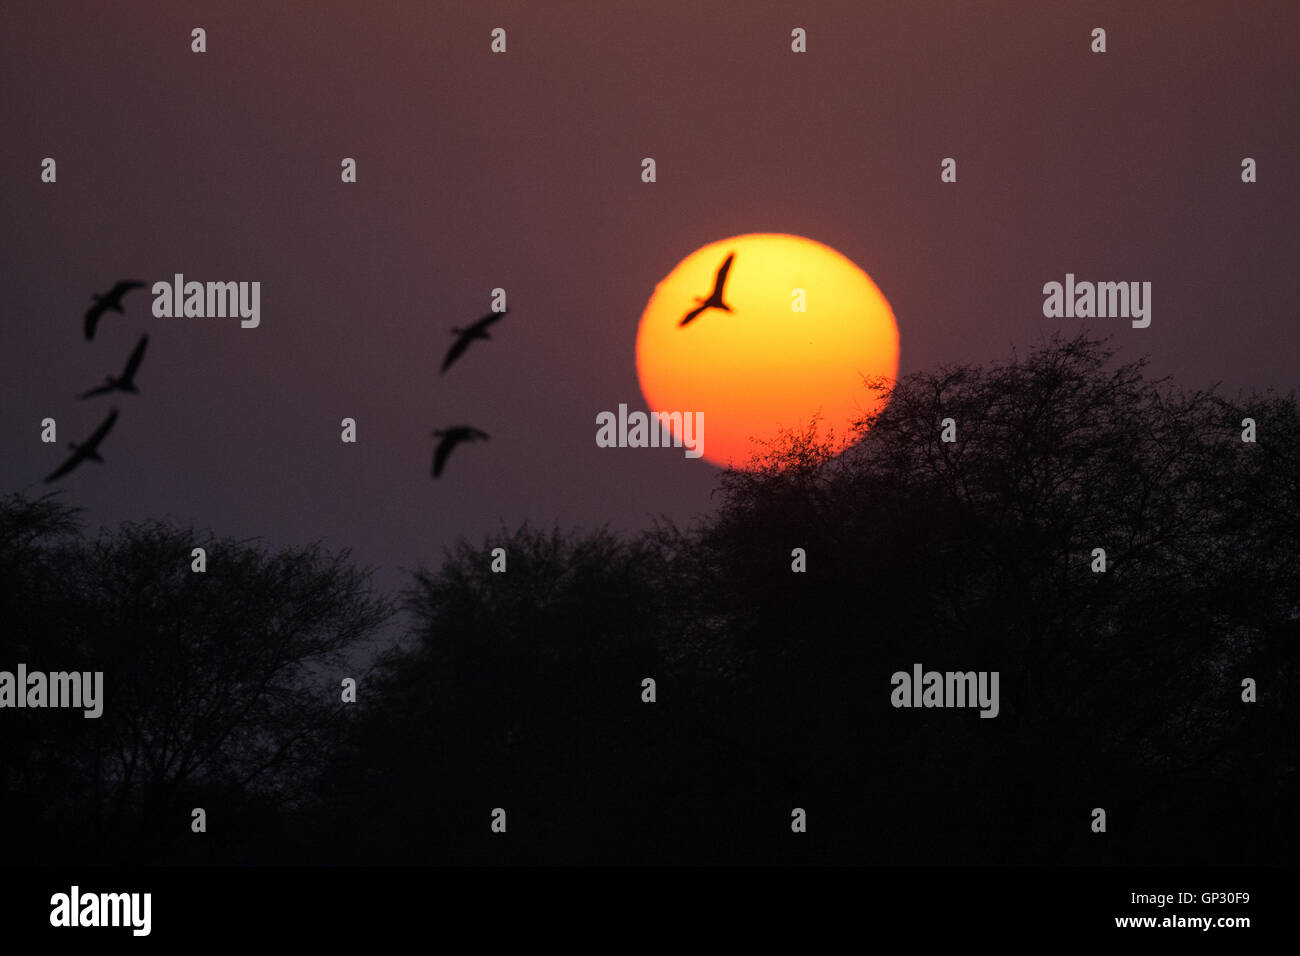 Silhouette of ducks and other birds during sunset at Bharatpur Keoladeo Bird Sanctuary UNESCO World Heritage Site - Stock Image